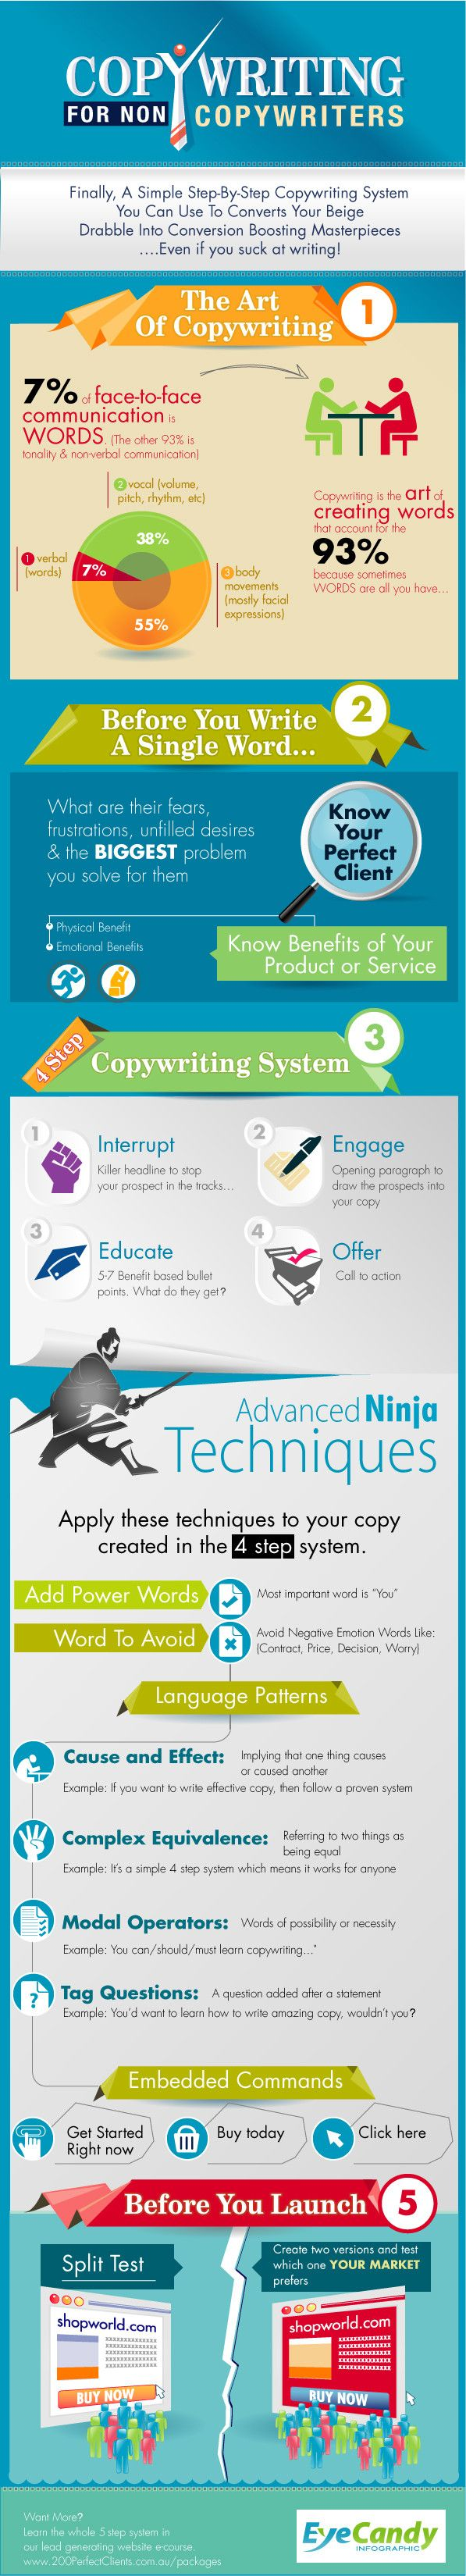 Copy Writing for Non Copywriters #infographic #Copywriting #ContentMarketing